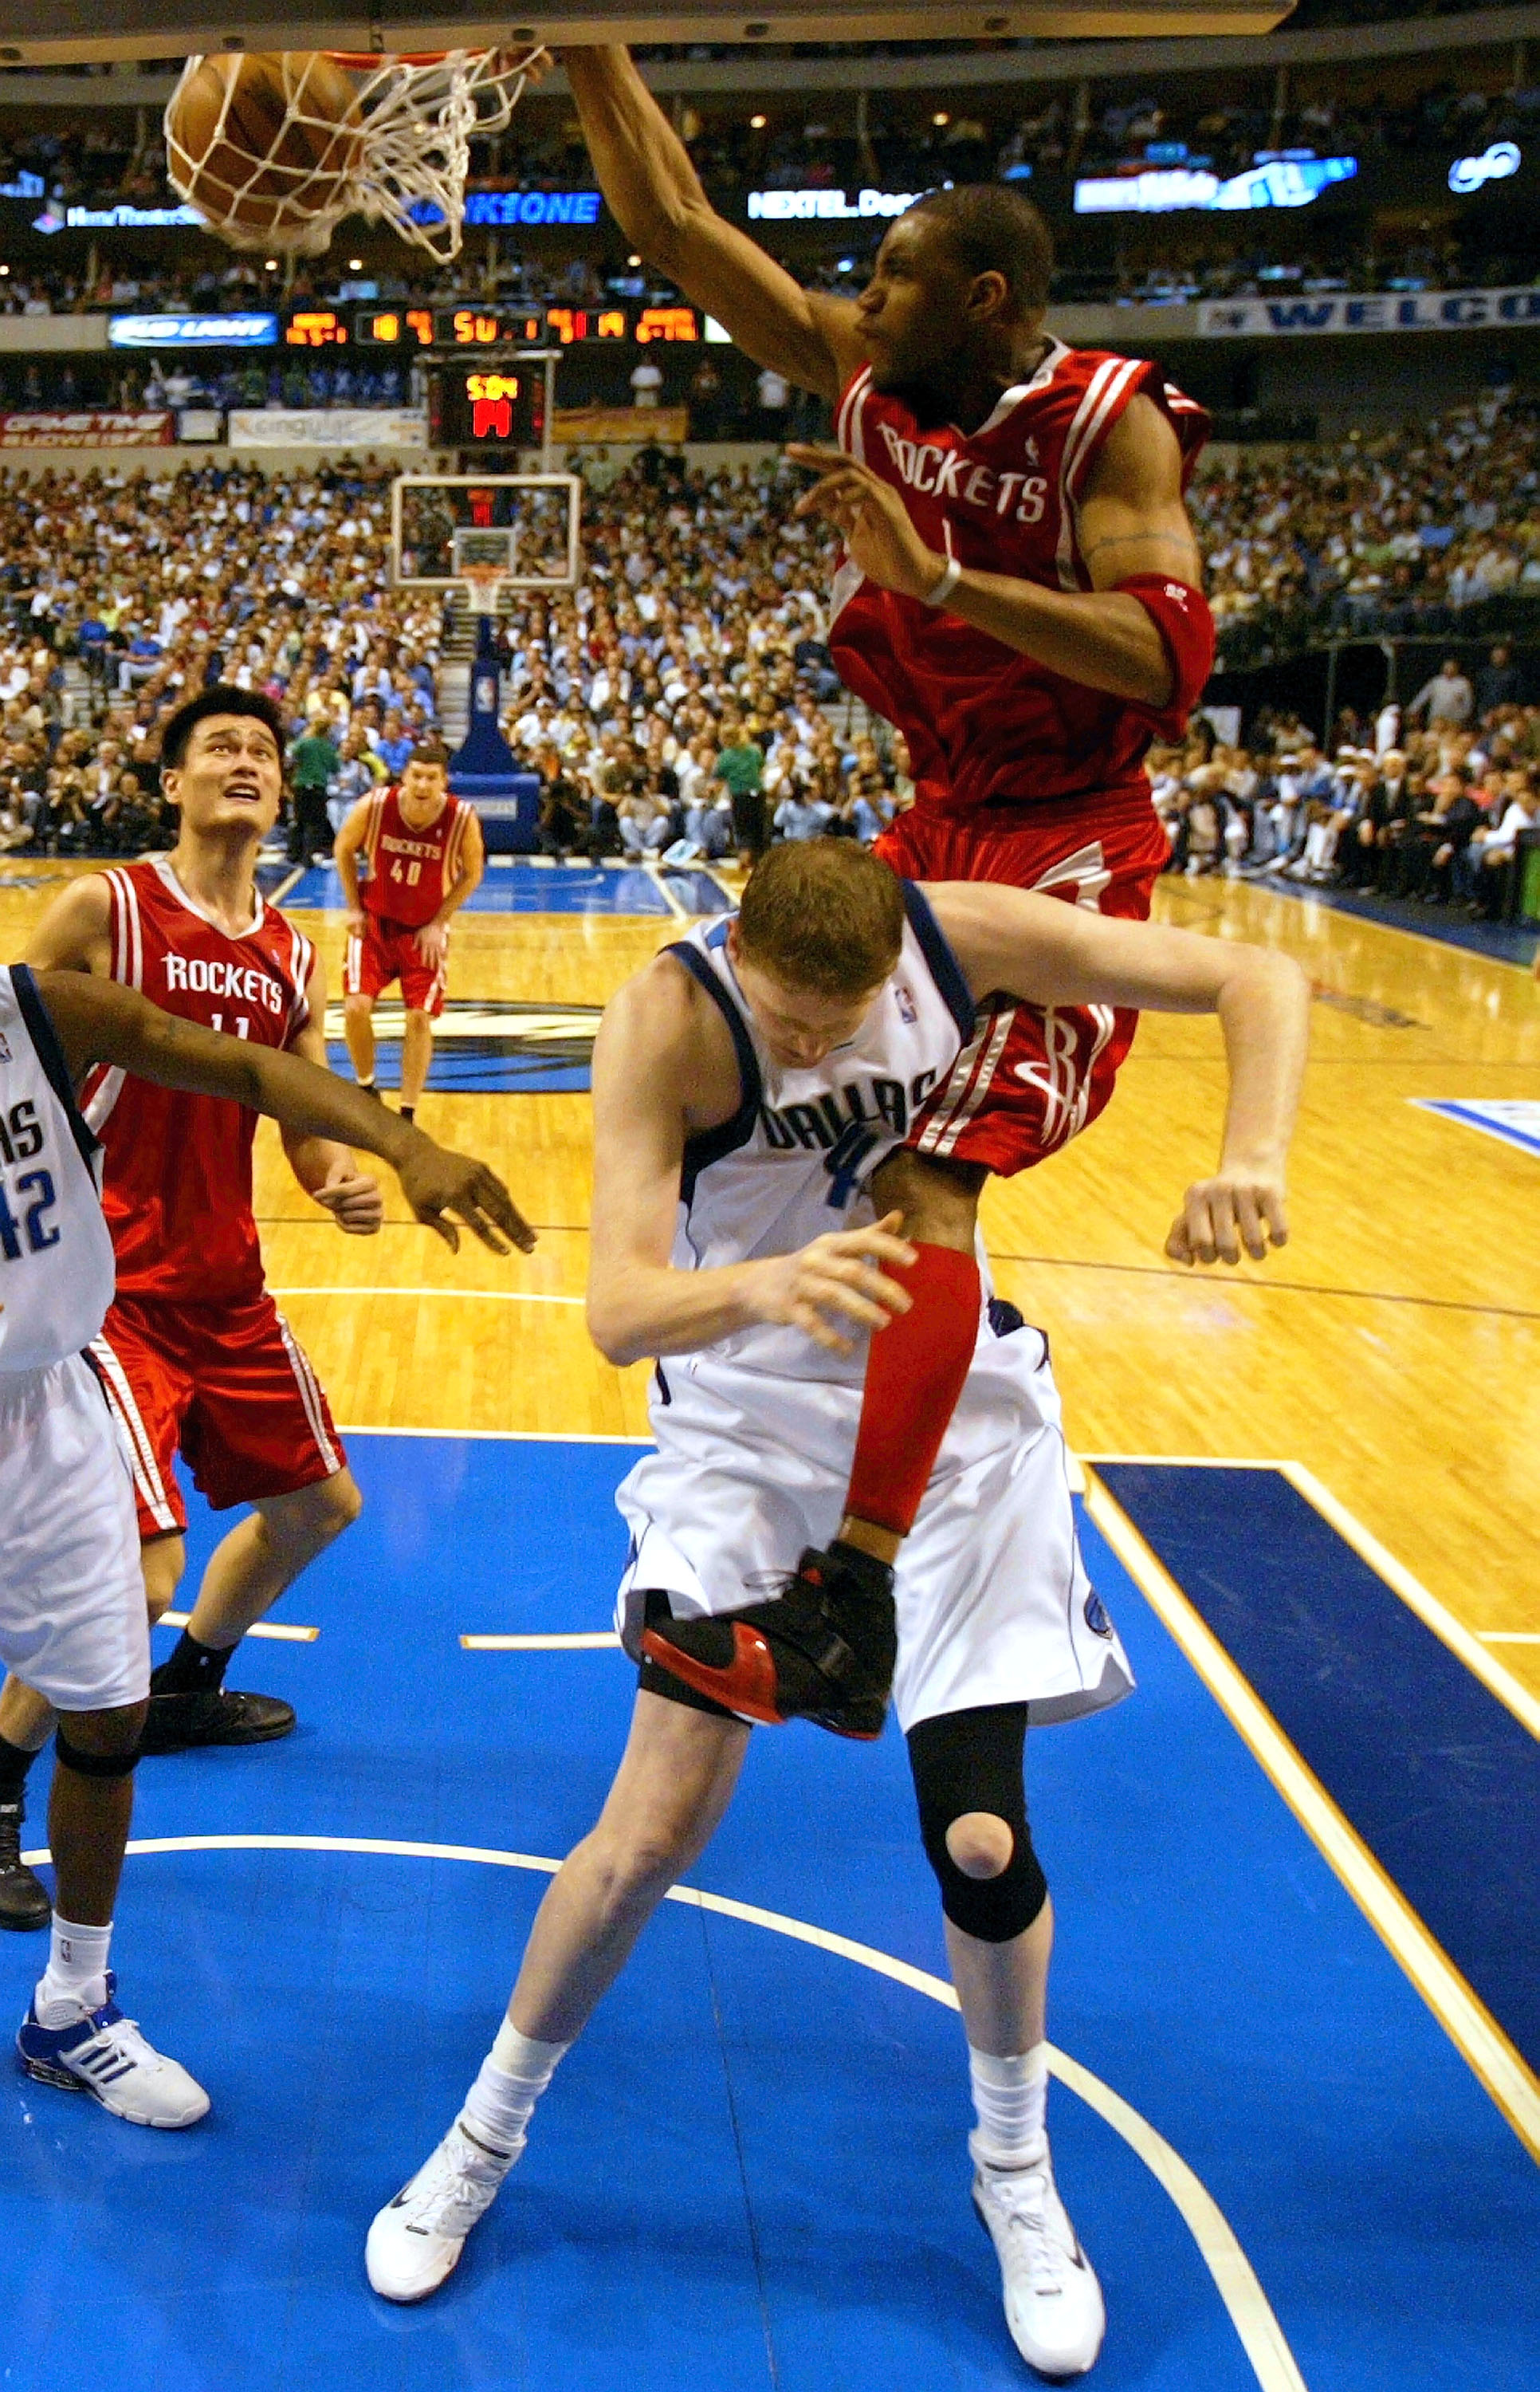 DALLAS - APRIL 25:  Forward Tracy McGrady #1 of the Houston Rockets makes the slam dunk on top of Shawn Bradley #44 of the Dallas Mavericks in Game two of the Western Conference Quarterfinals during the 2005 NBA Playoffs on April 25, 2005 at the American